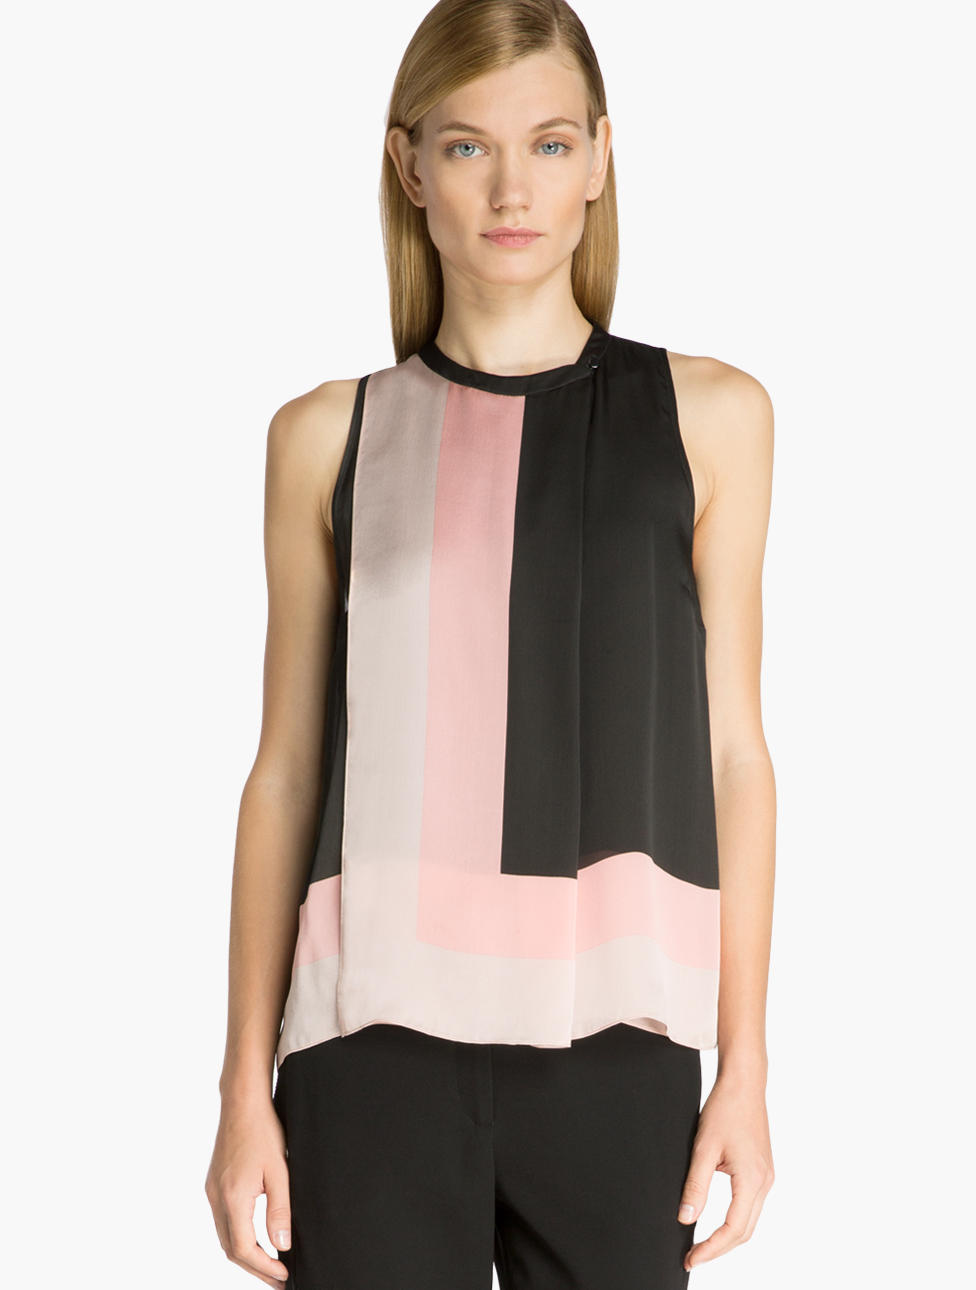 Over 60% Off Selected Styles @ Halston Heritage